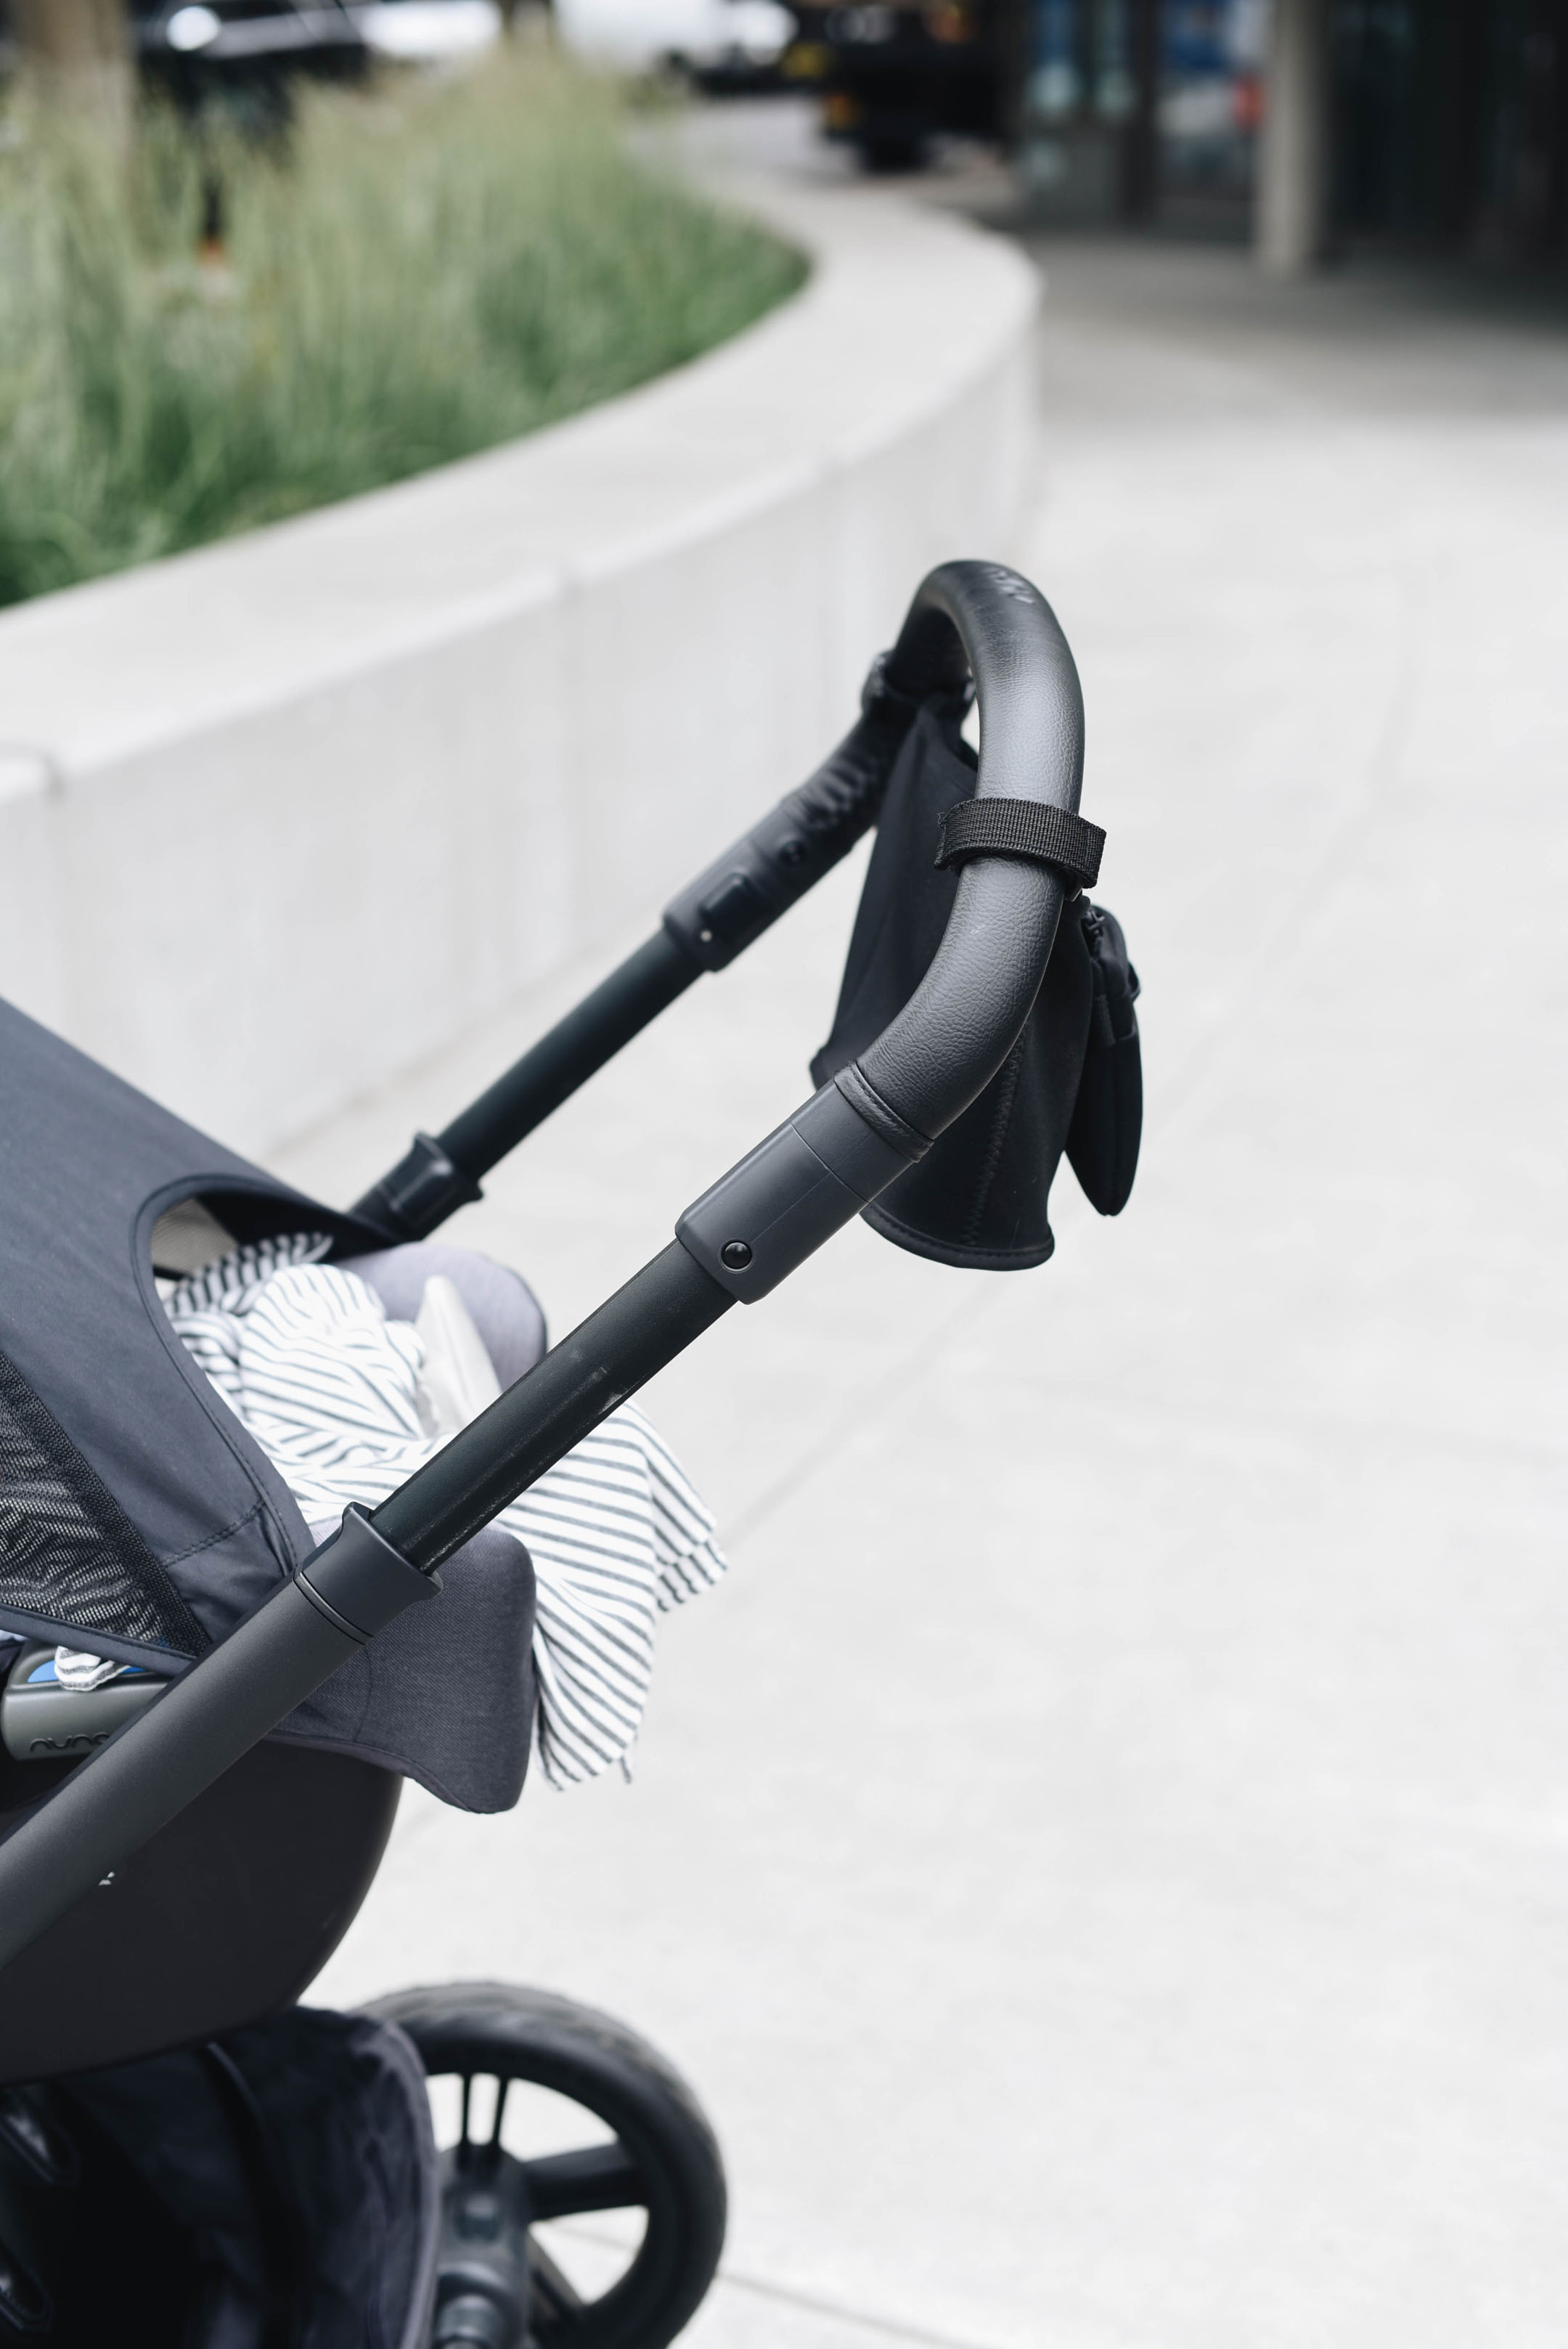 Nuna Mixx Stroller handle for tall people